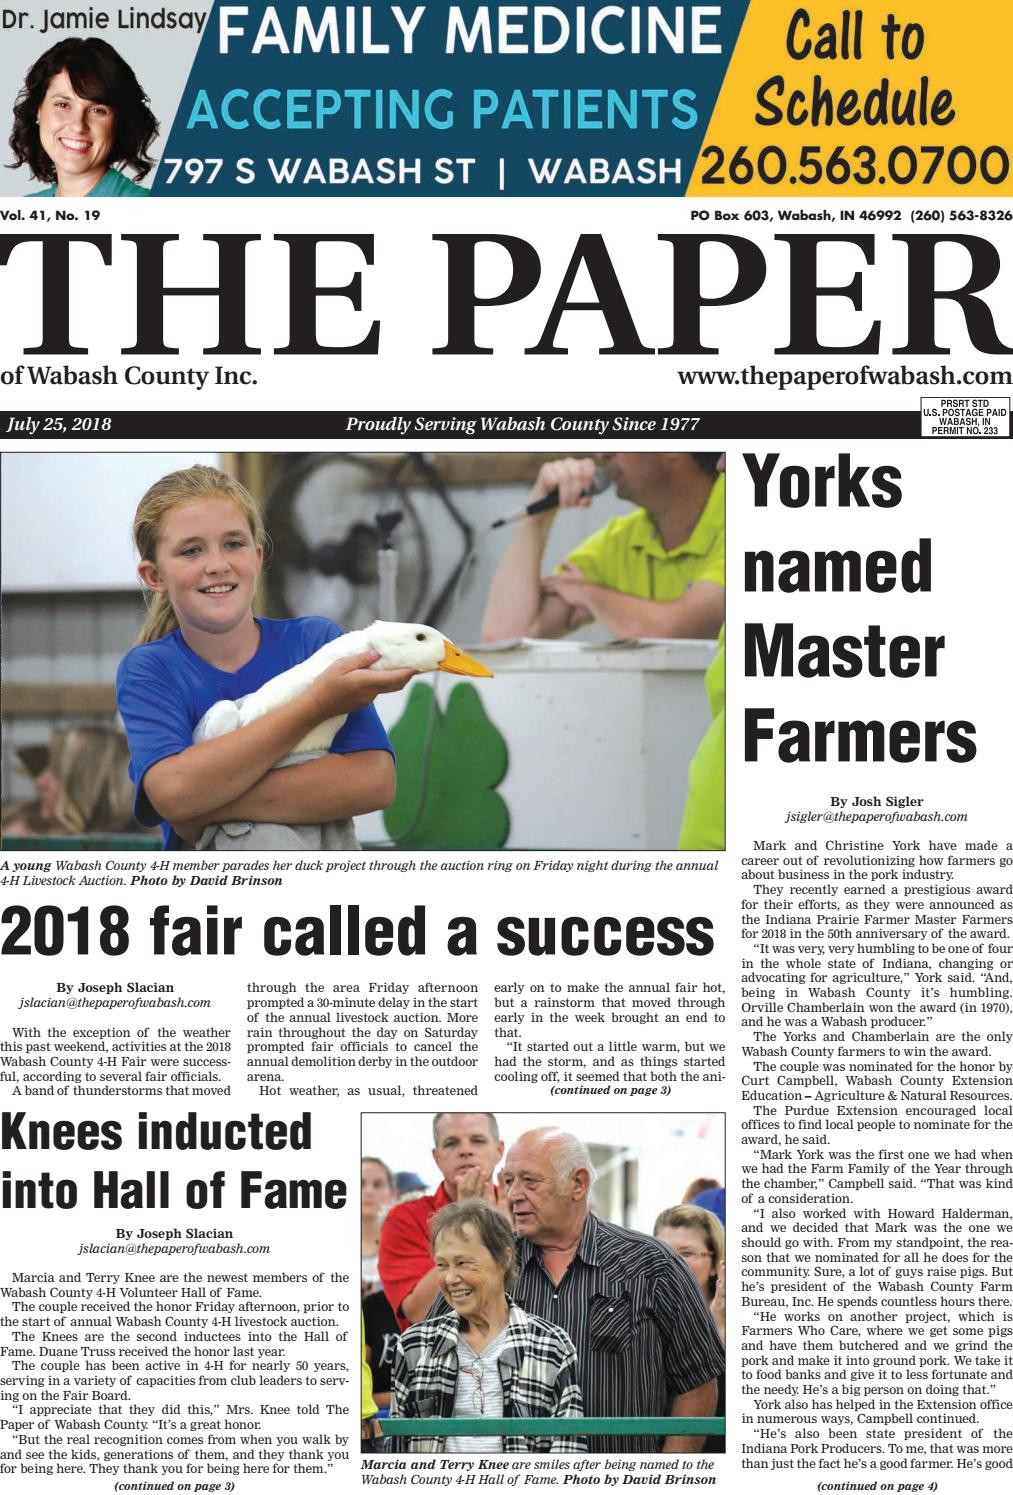 c4807b2eb The Paper of Wabash County -- July 25, 2018 by The Paper of Wabash County -  issuu